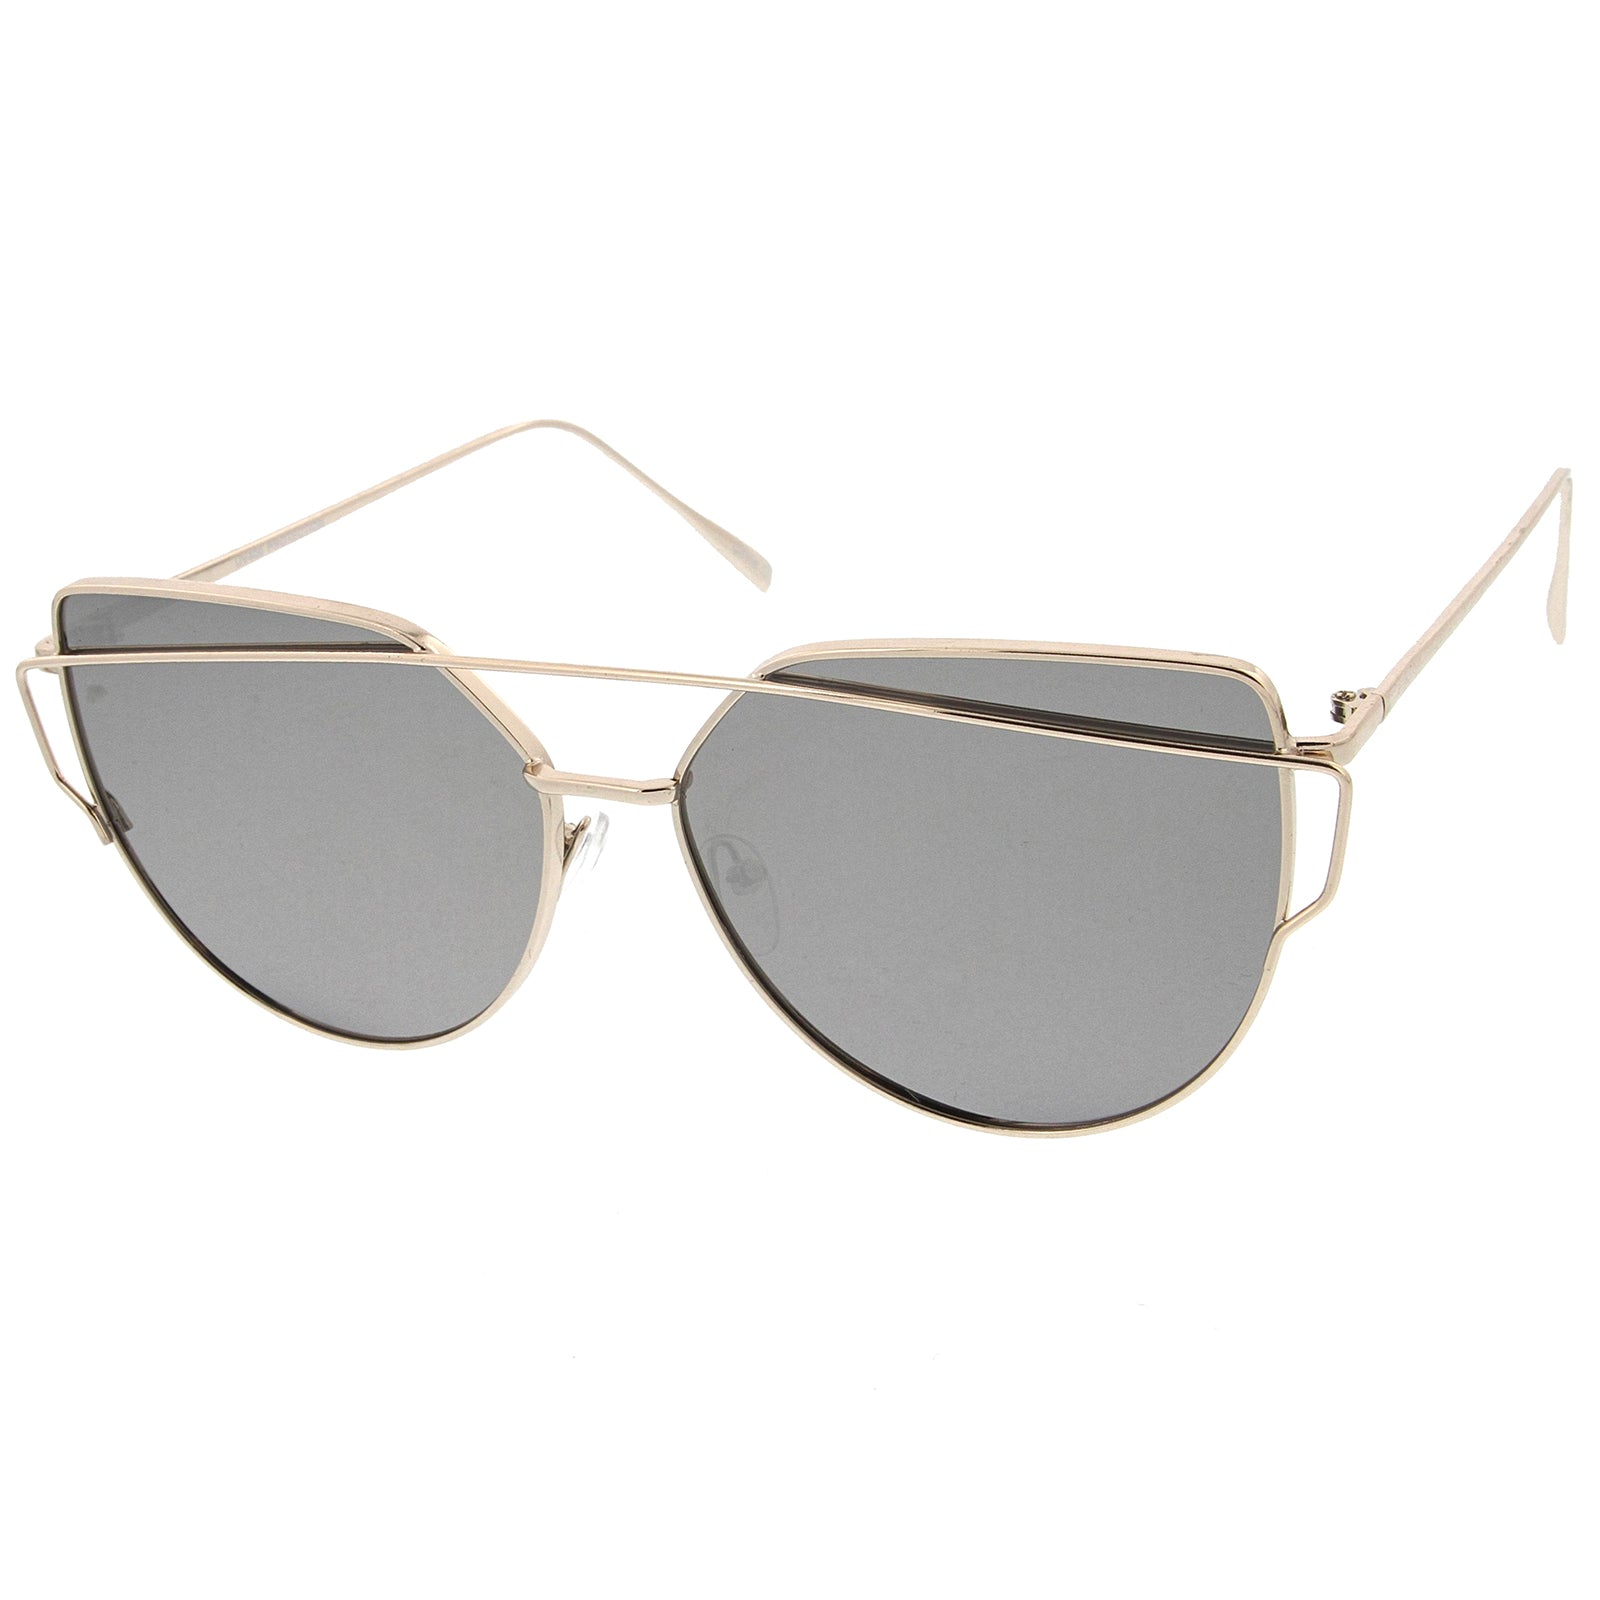 Oversize Metal Frame Thin Temple Color Mirror Flat Lens Aviator Sunglasses 62mm - sunglass.la - 6